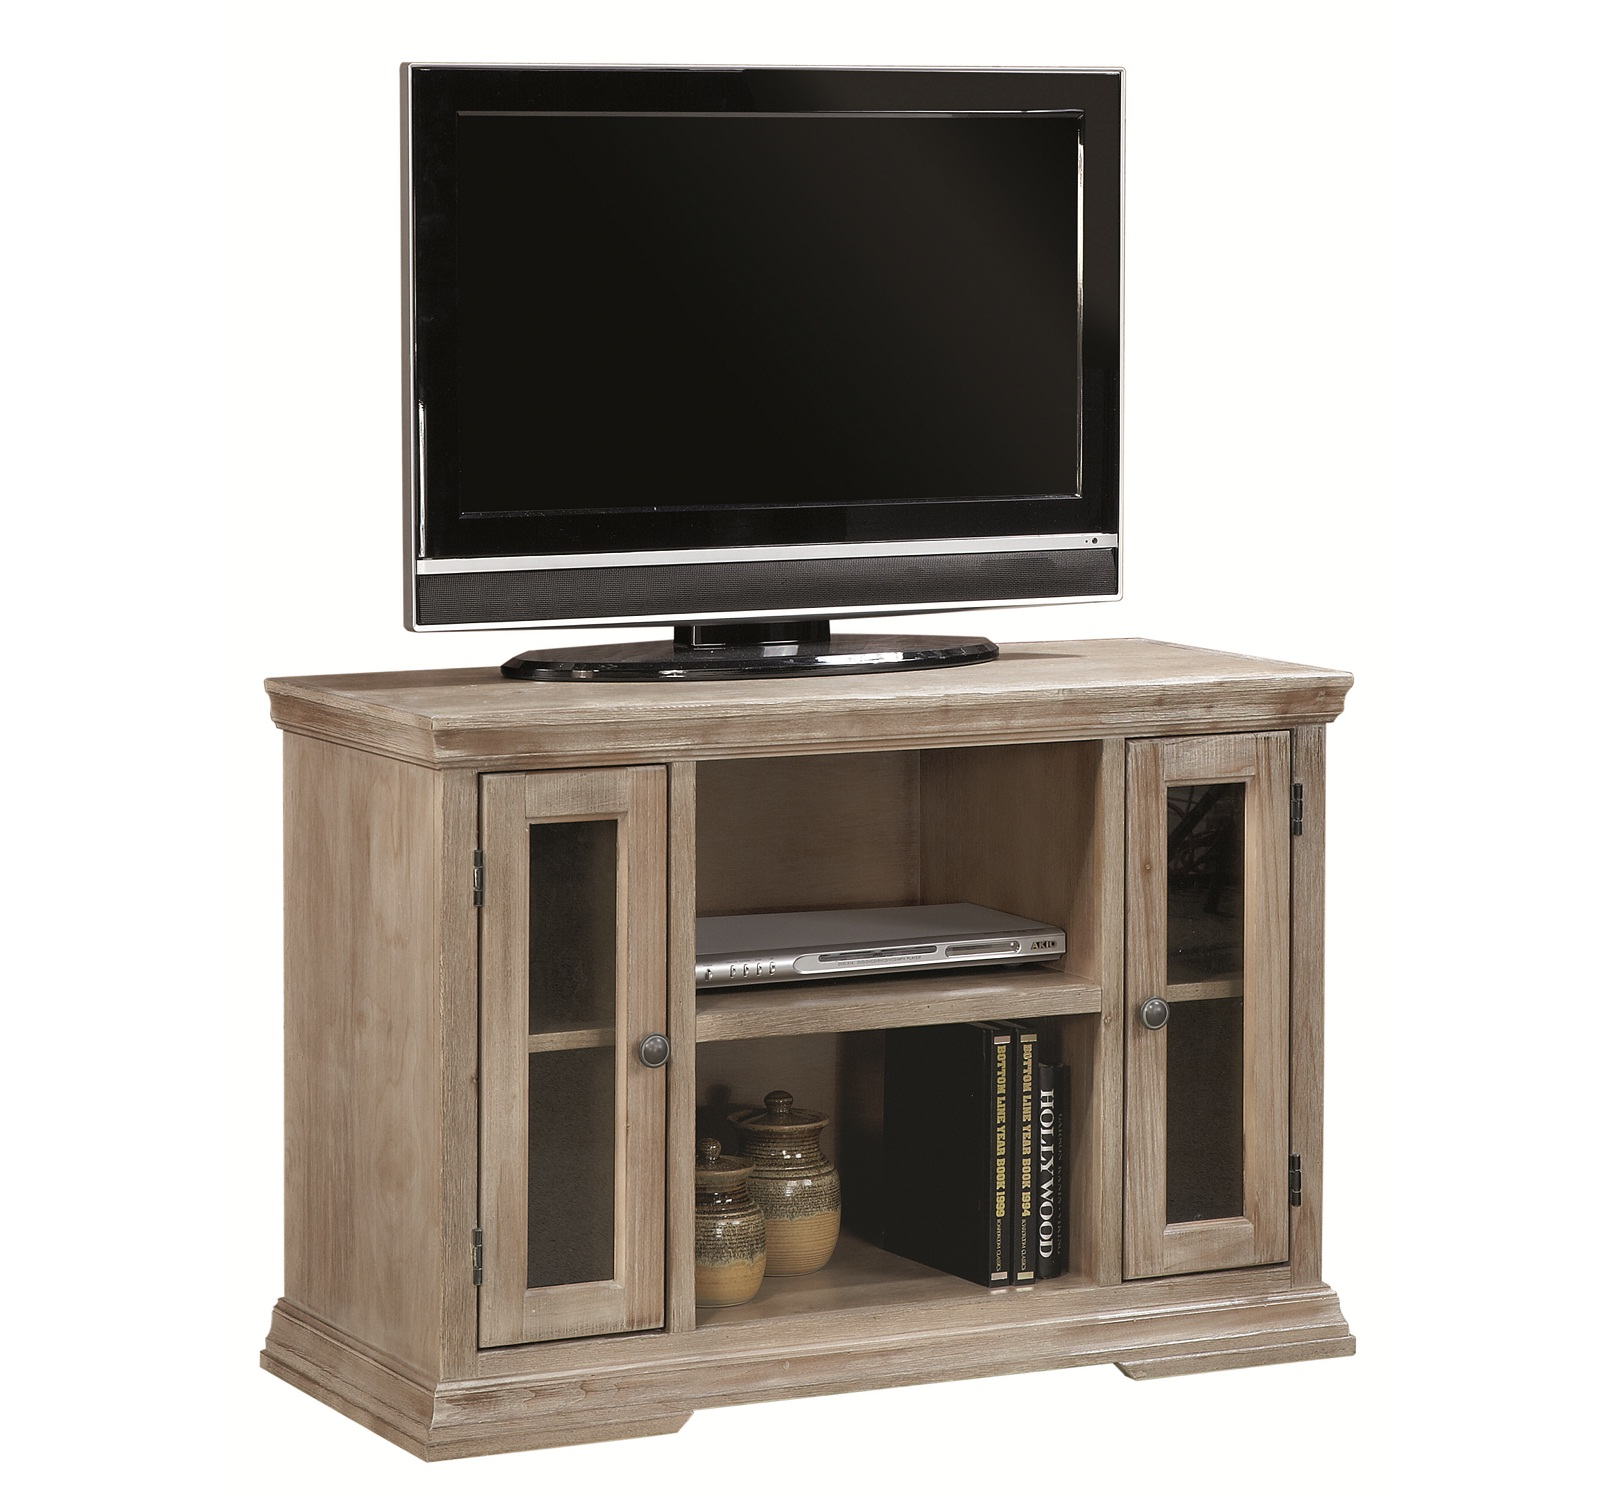 Aspenhome Canyon Creek 41 TV Console With Doors In